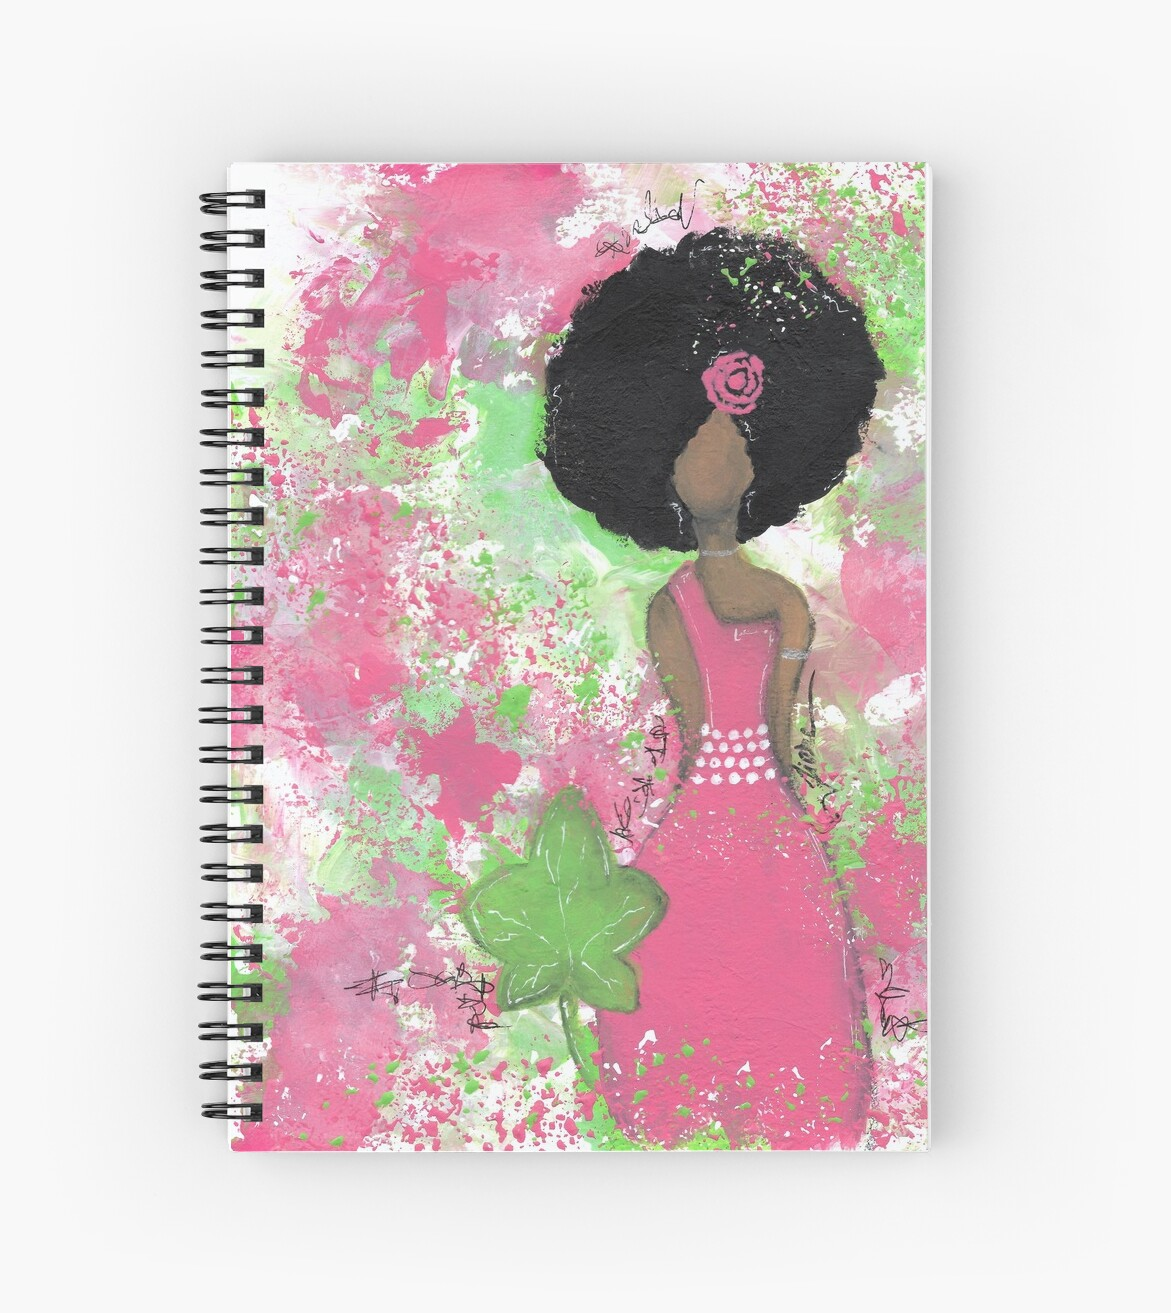 Dripping in Pink and Green Angel by Tiare Smith